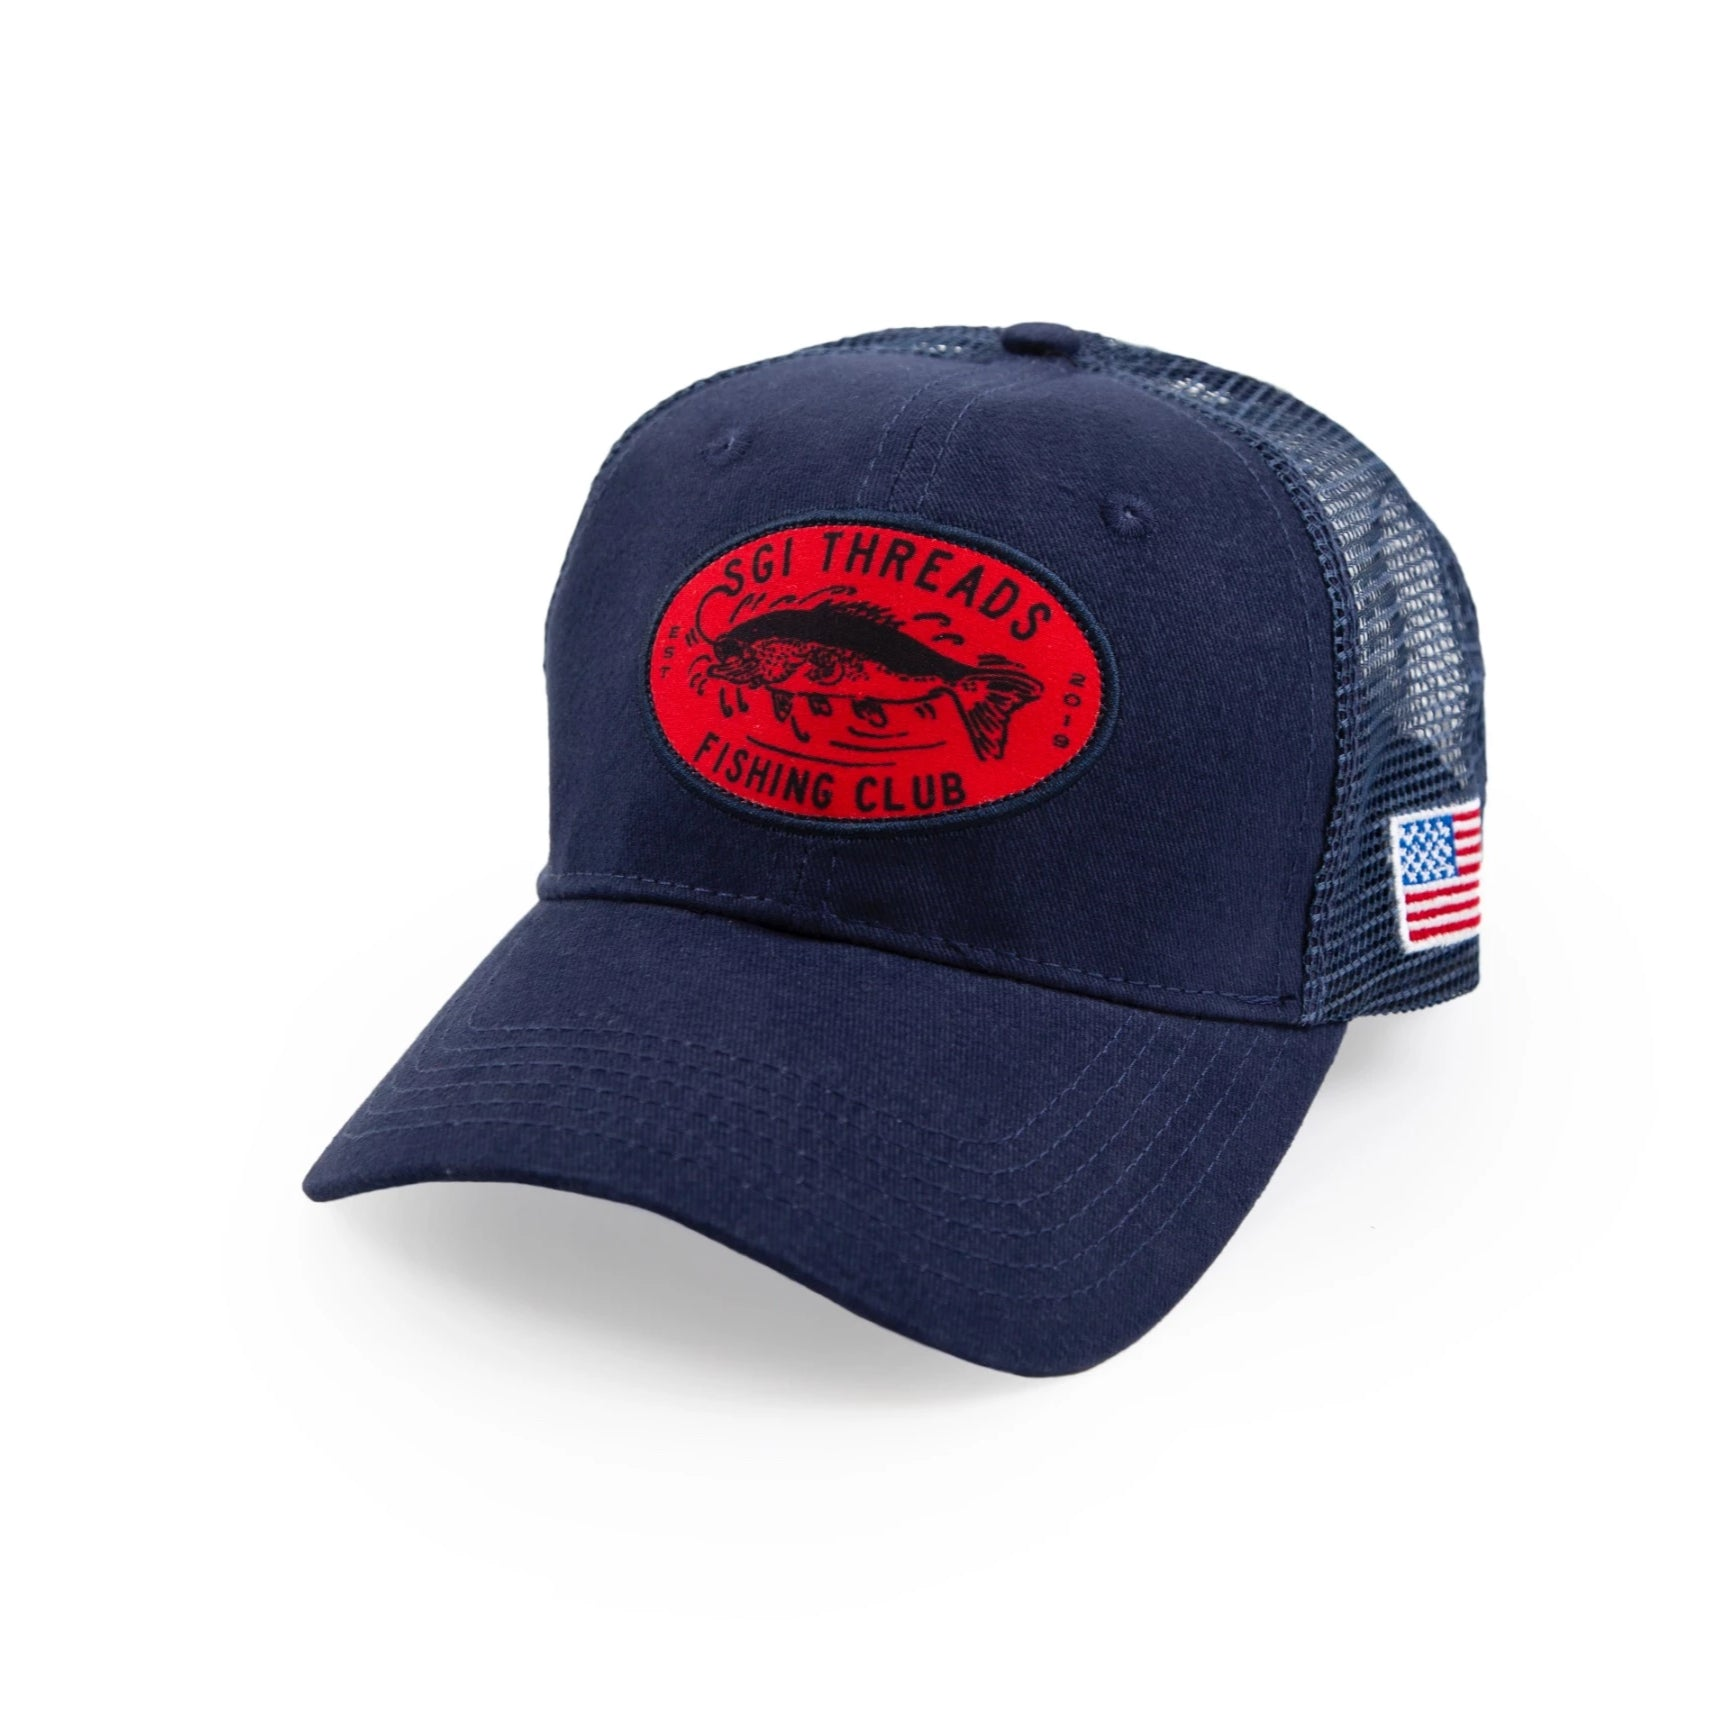 FISHING CLUB TRUCKER HAT NAVY/RED